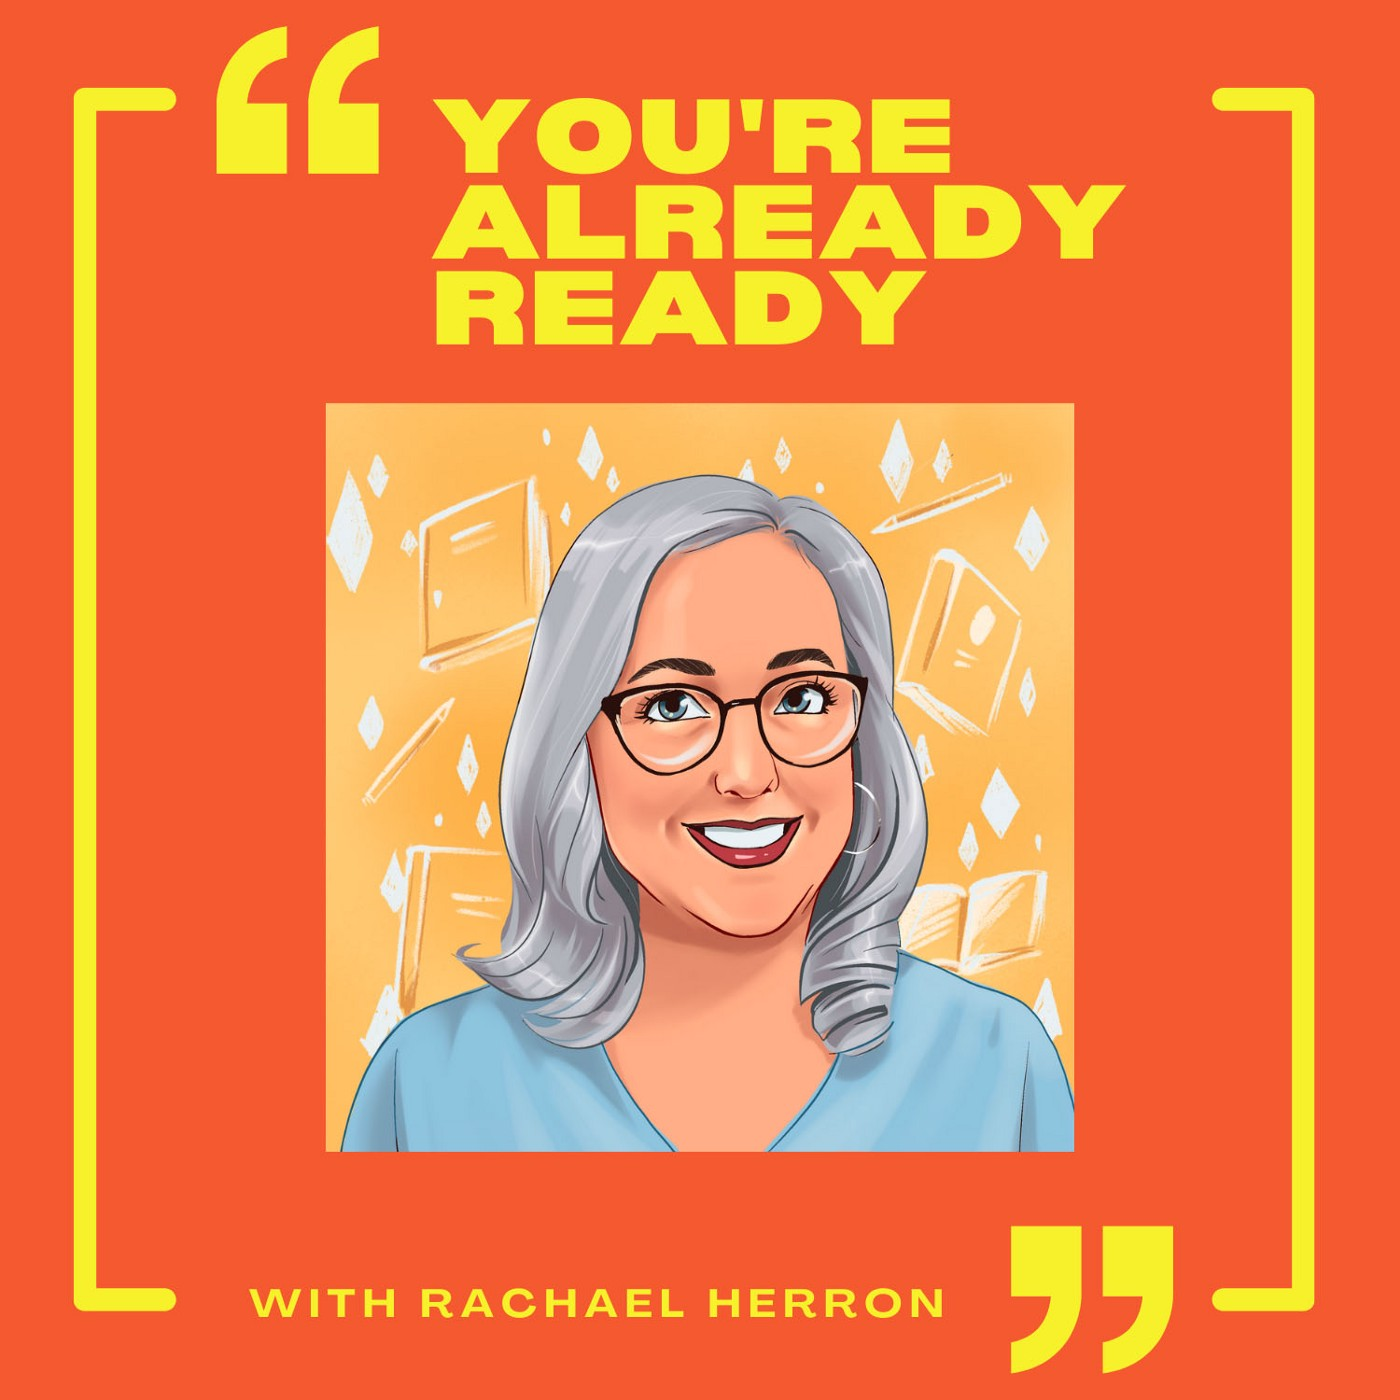 You're Already Ready — Rachael Herron, cartoon image of Rachael